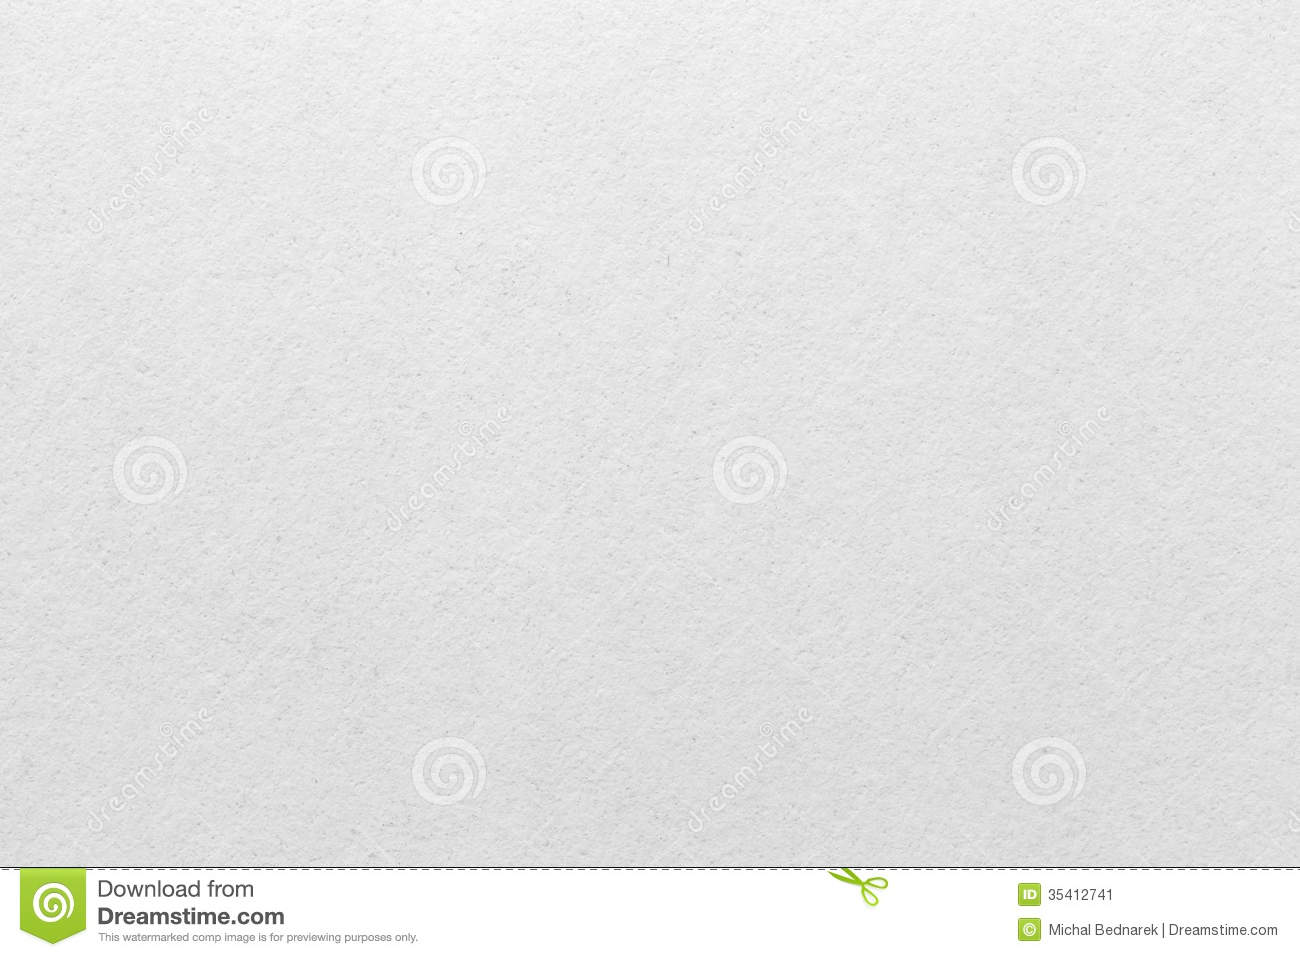 White wall background. A high resolution photograph